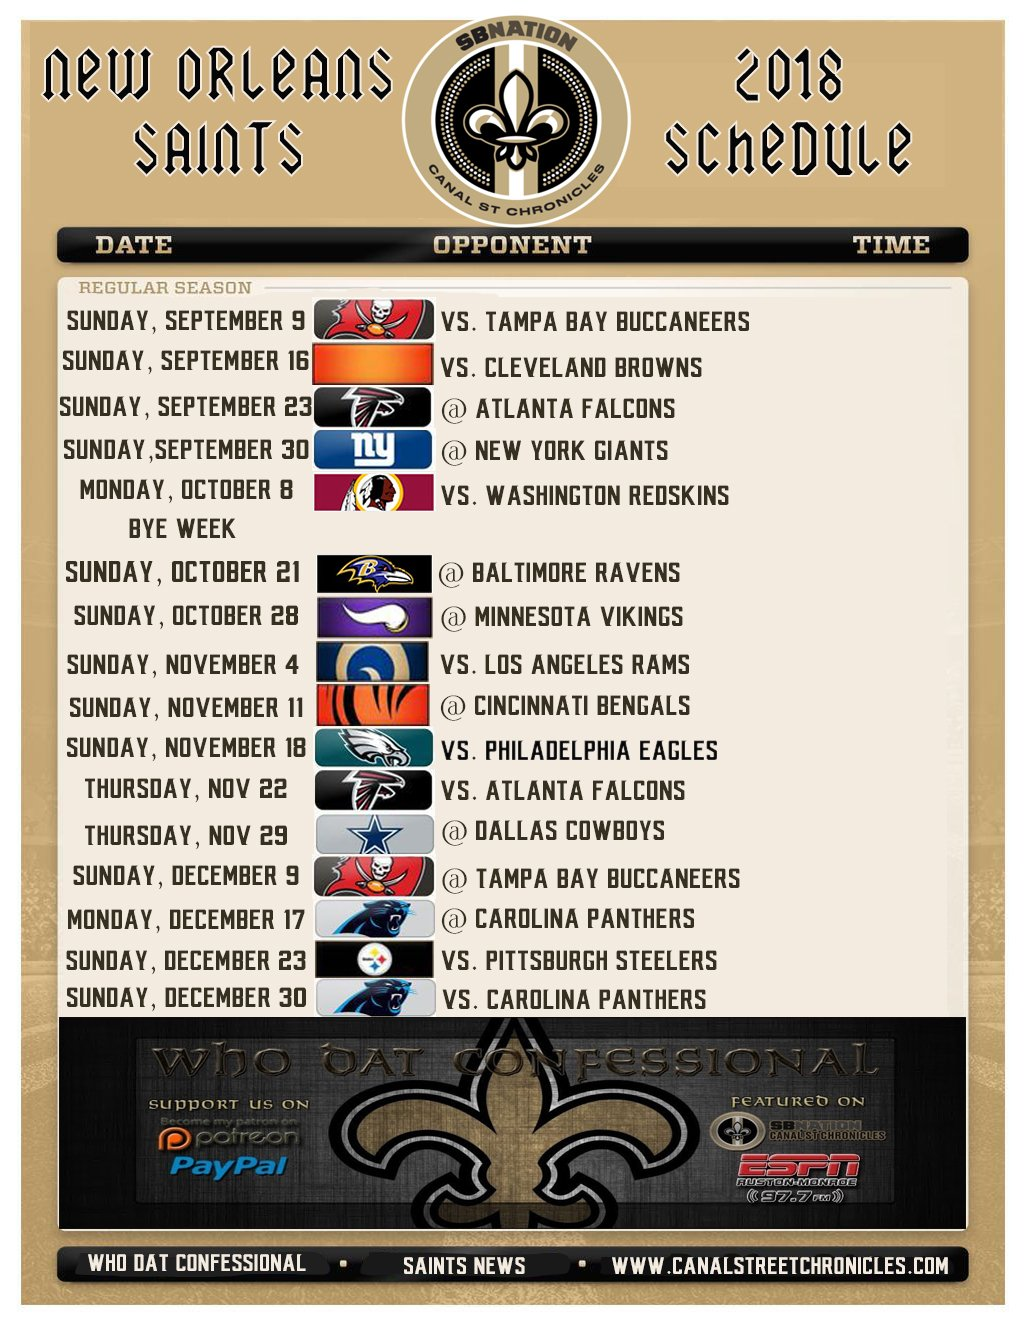 """New Orleans Saints 2018 2019 Schedule >> Deuce Windham on Twitter: """"Here is the unofficial #Saints schedule for the 2018 NFL Season, per ..."""